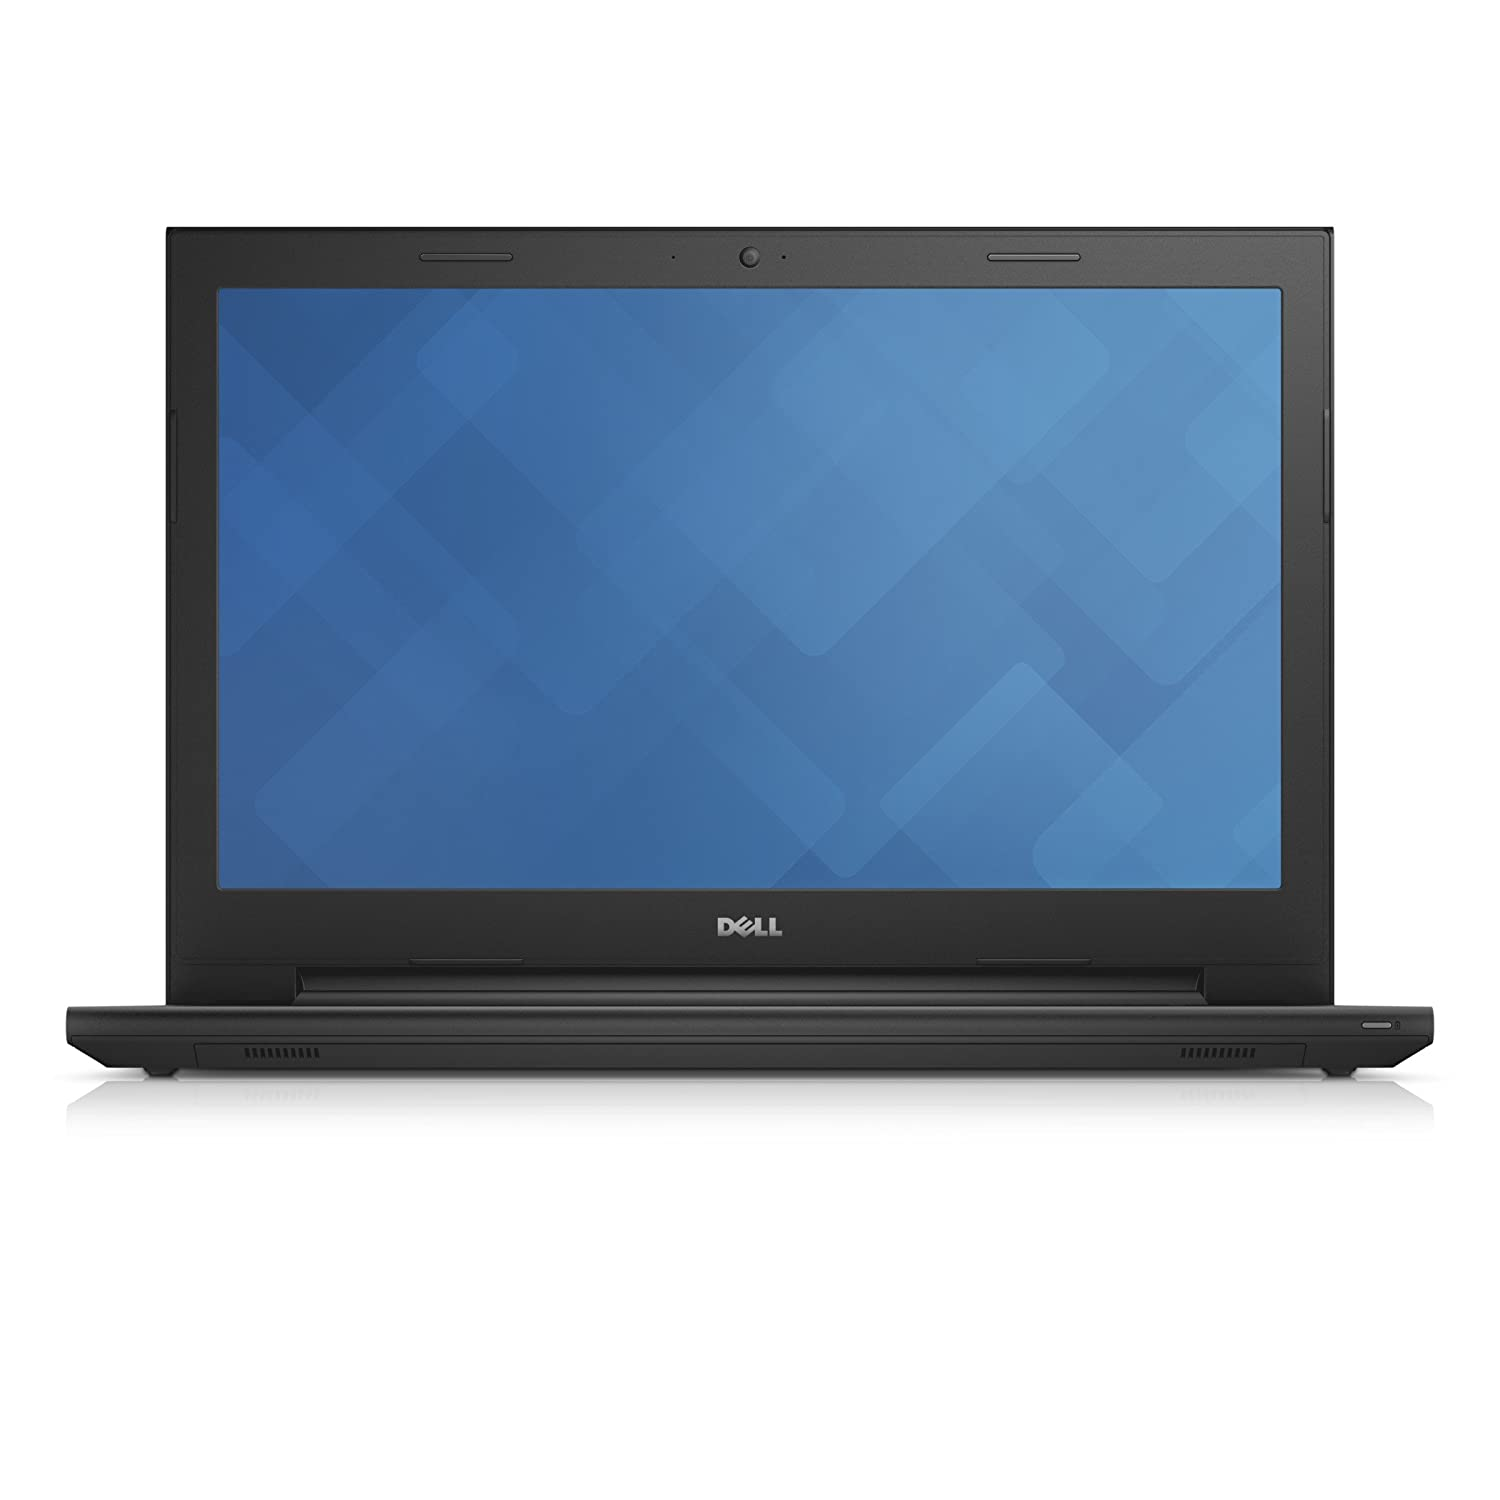 Dell 3450 - Intel Core i3-4005U, 4 GB de RAM, 500 GB de disco duro, Intel HD Graphics 4000, Windows 8.1